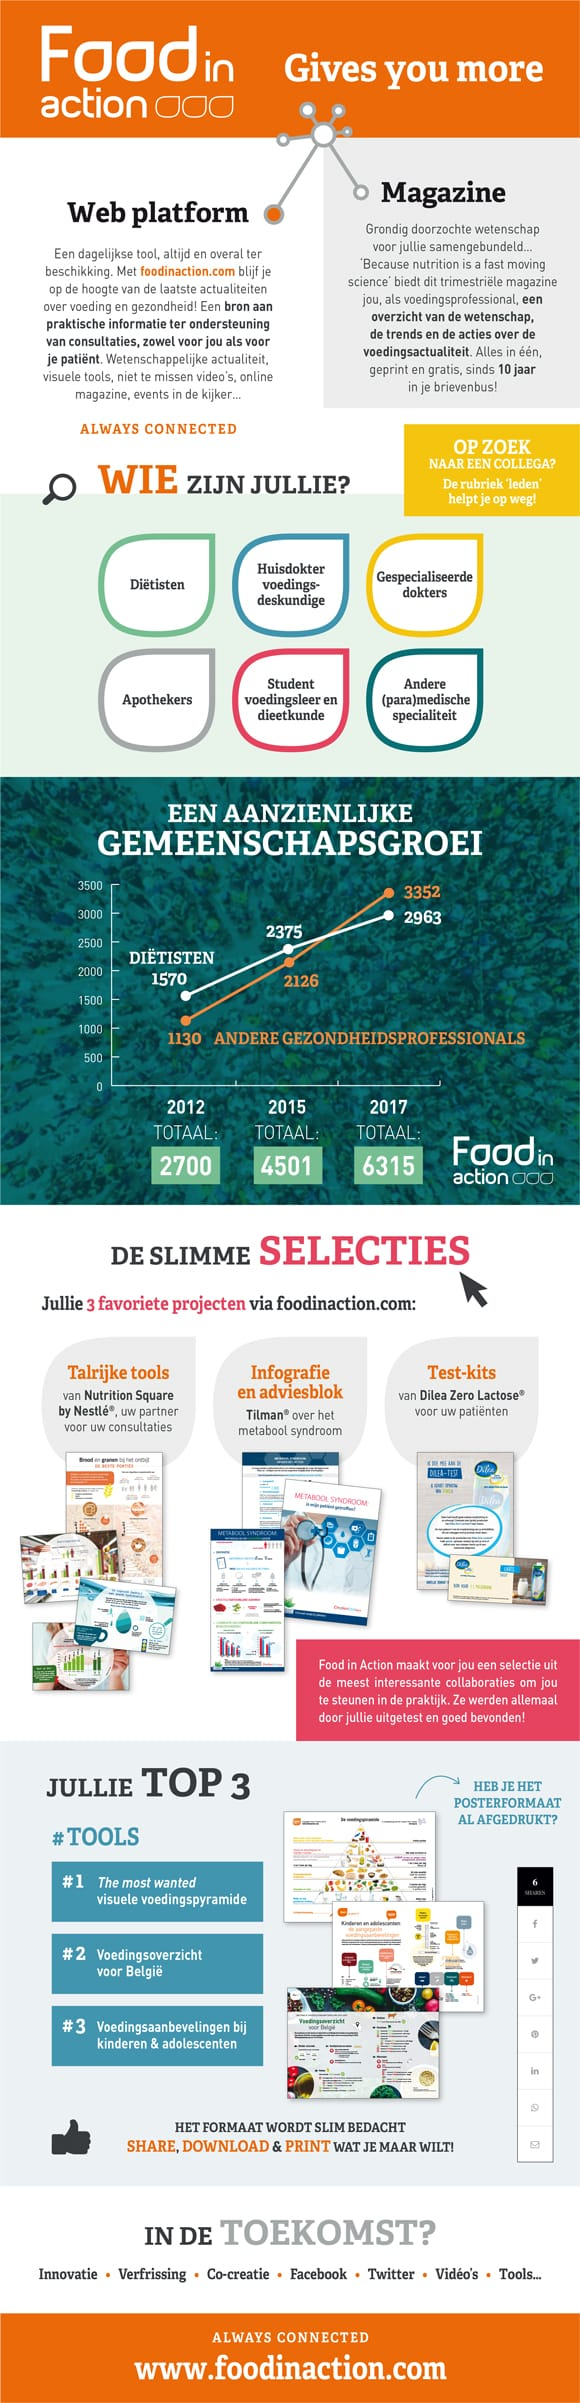 infografiek-food-in-action-gives-more